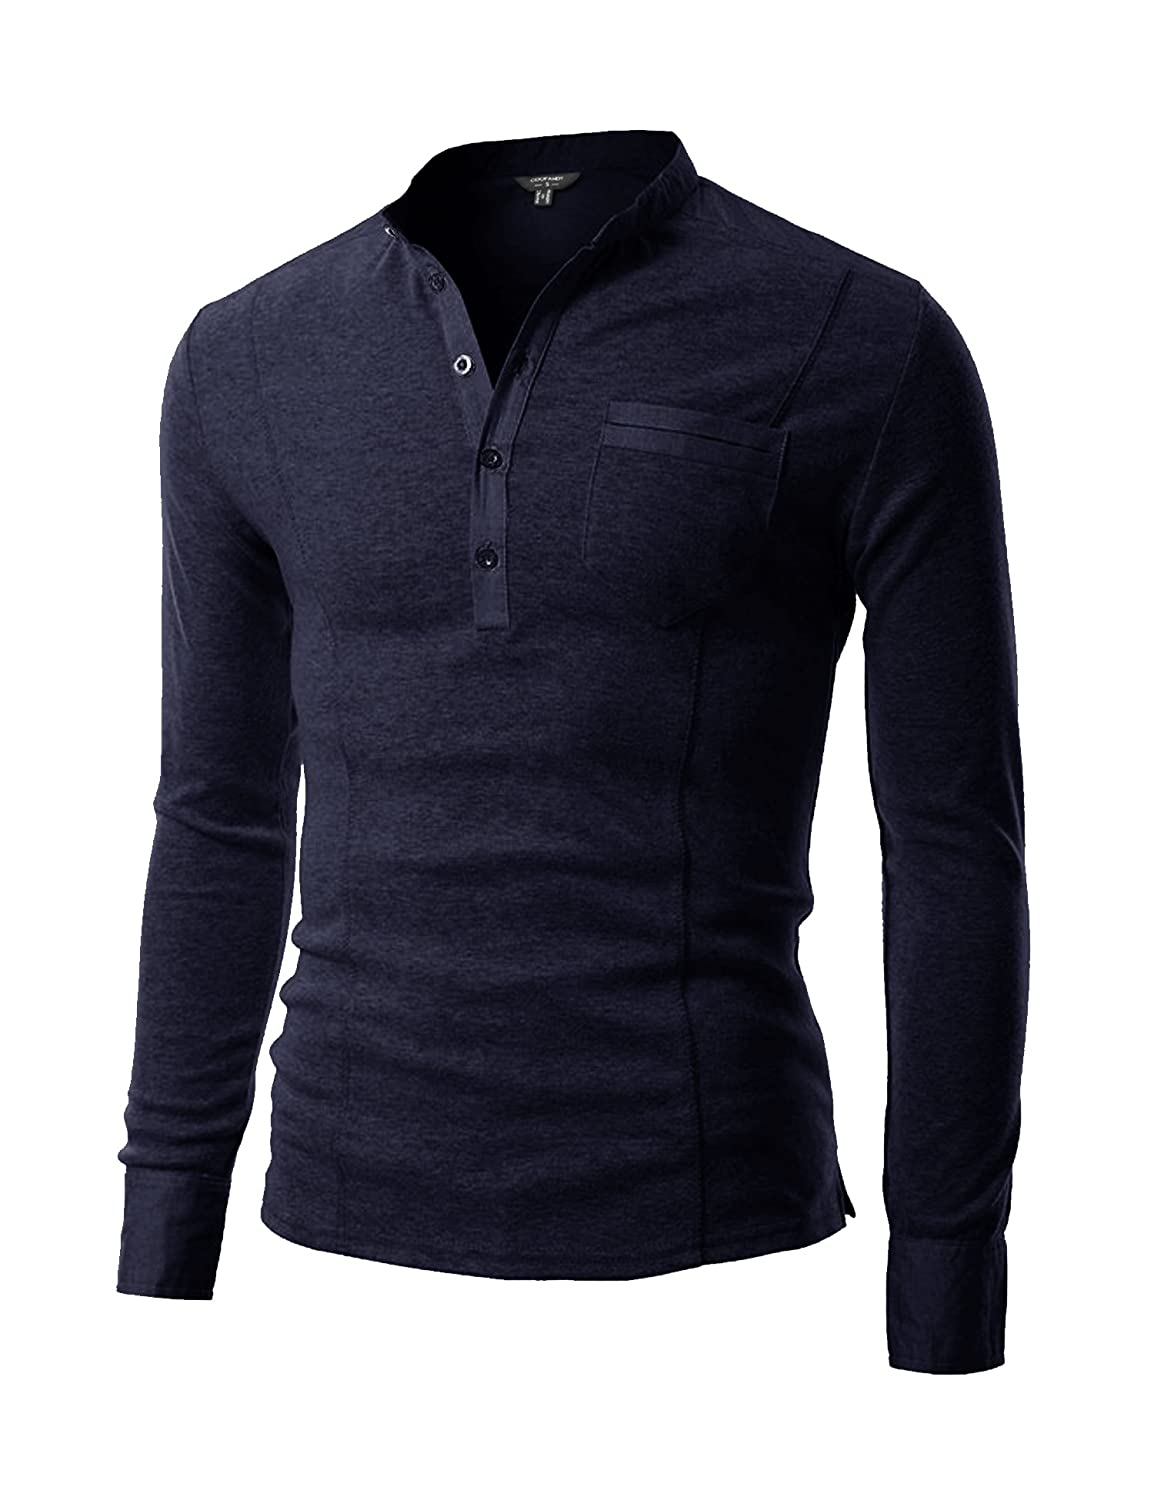 COOFANDY Men's Basic Long Sleeve Henley Shirt Casual Slim Fit T Shirt